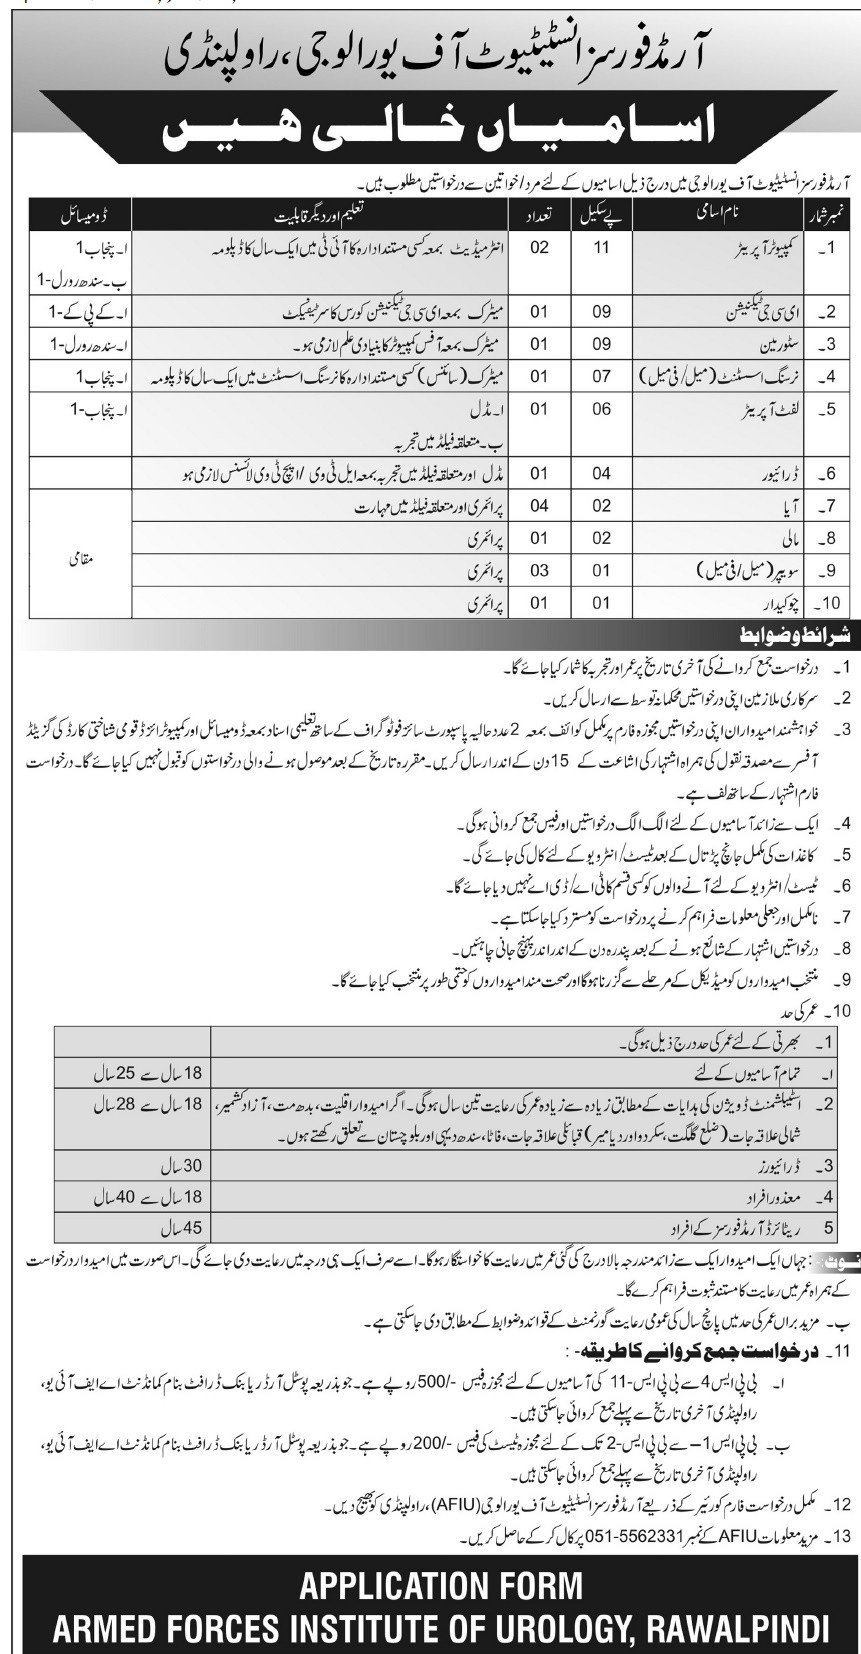 Armed Forces Institute of Urology AFIU Management Jobs 2021